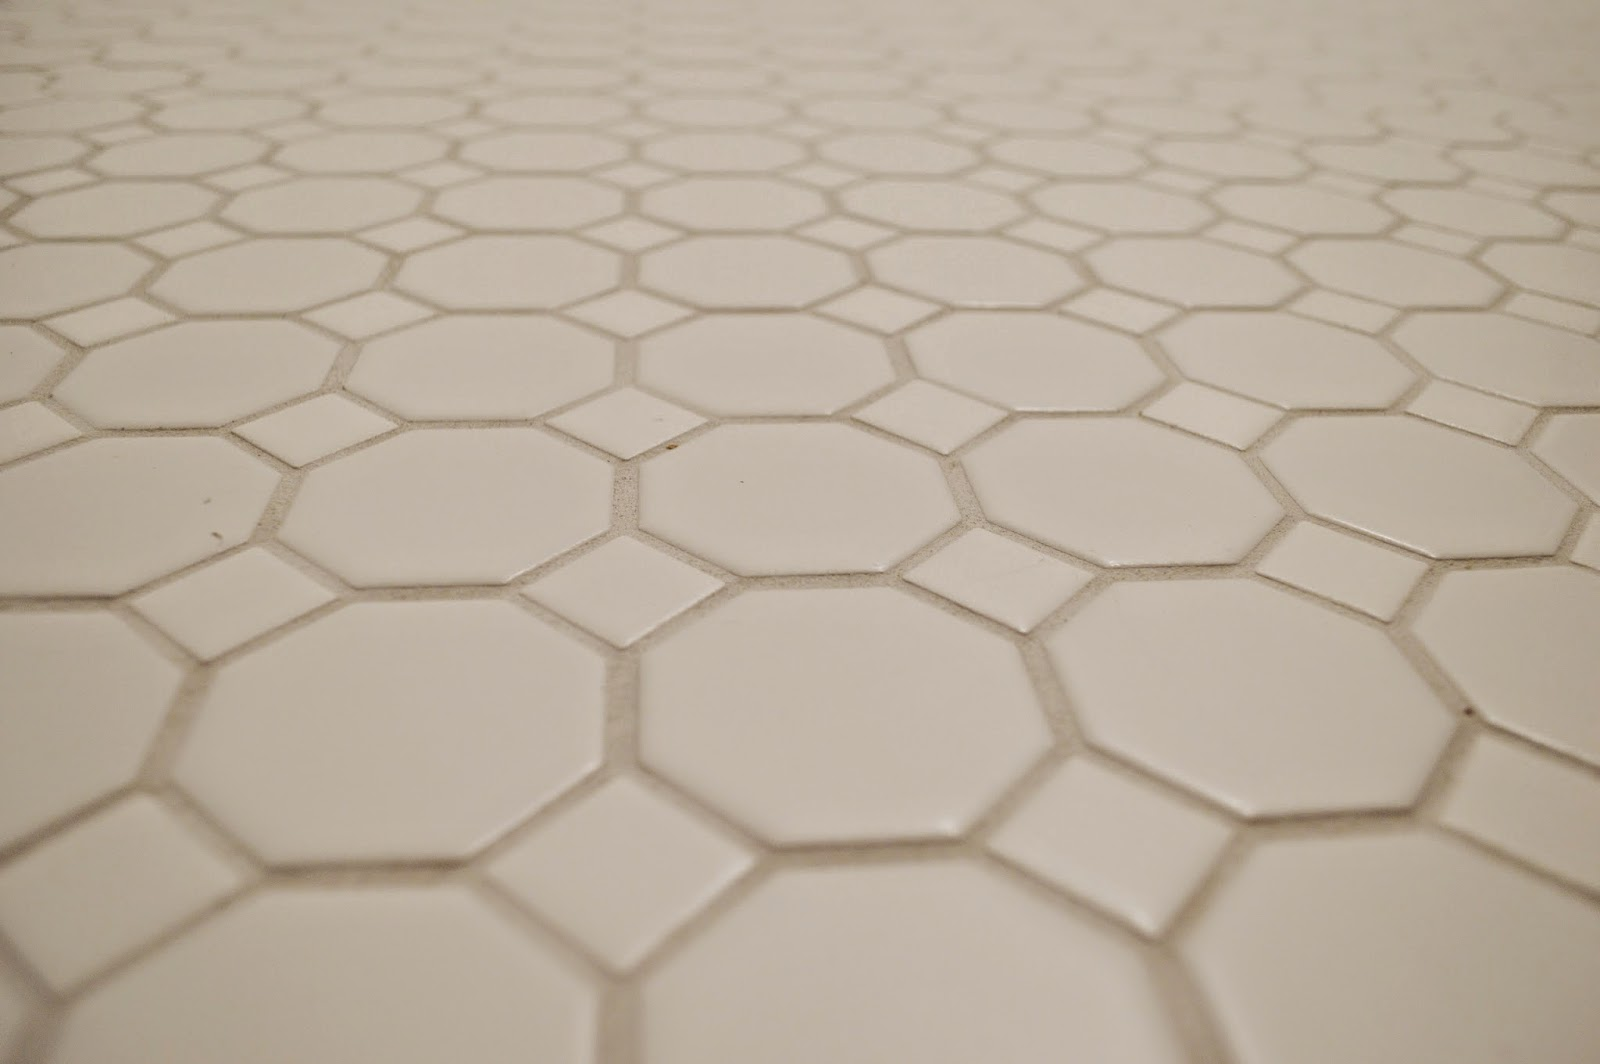 Gray Bathrooms Ideas 724 South House My New Bathroom Obsession The Floor Tile